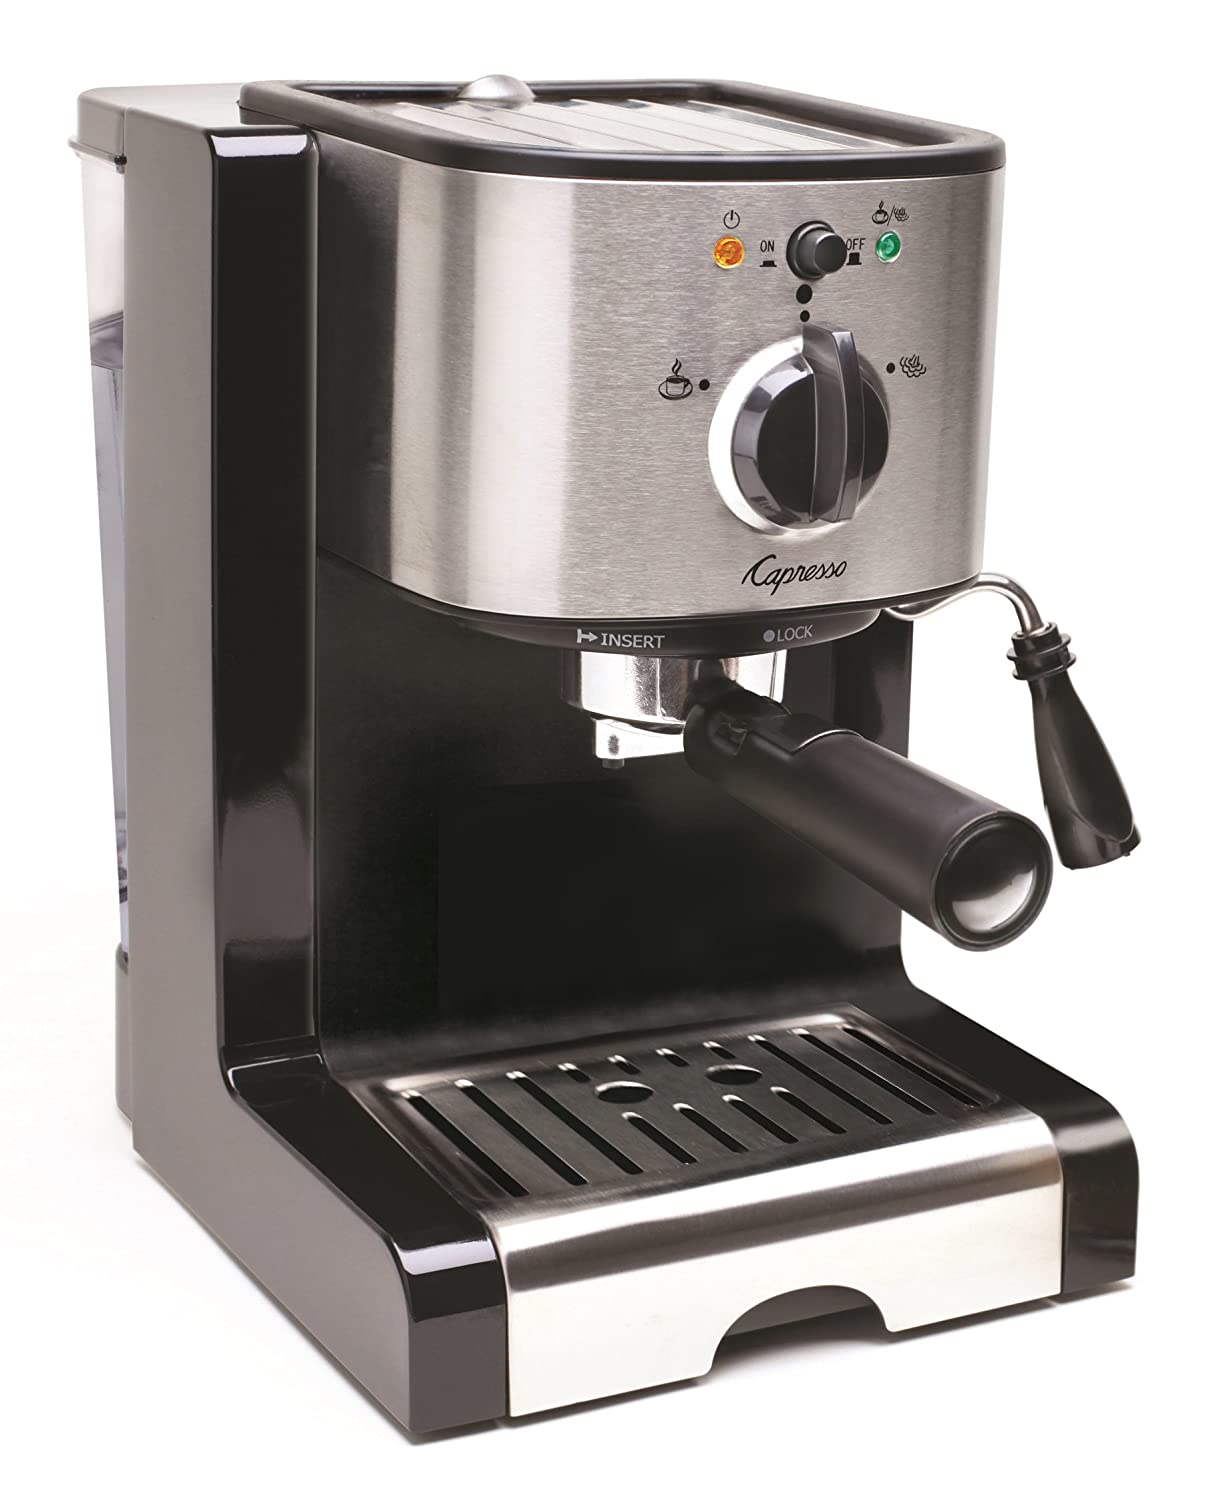 amazoncom capresso ec100 pump espresso and cappuccino machine semi automatic pump espresso machines kitchen u0026 dining